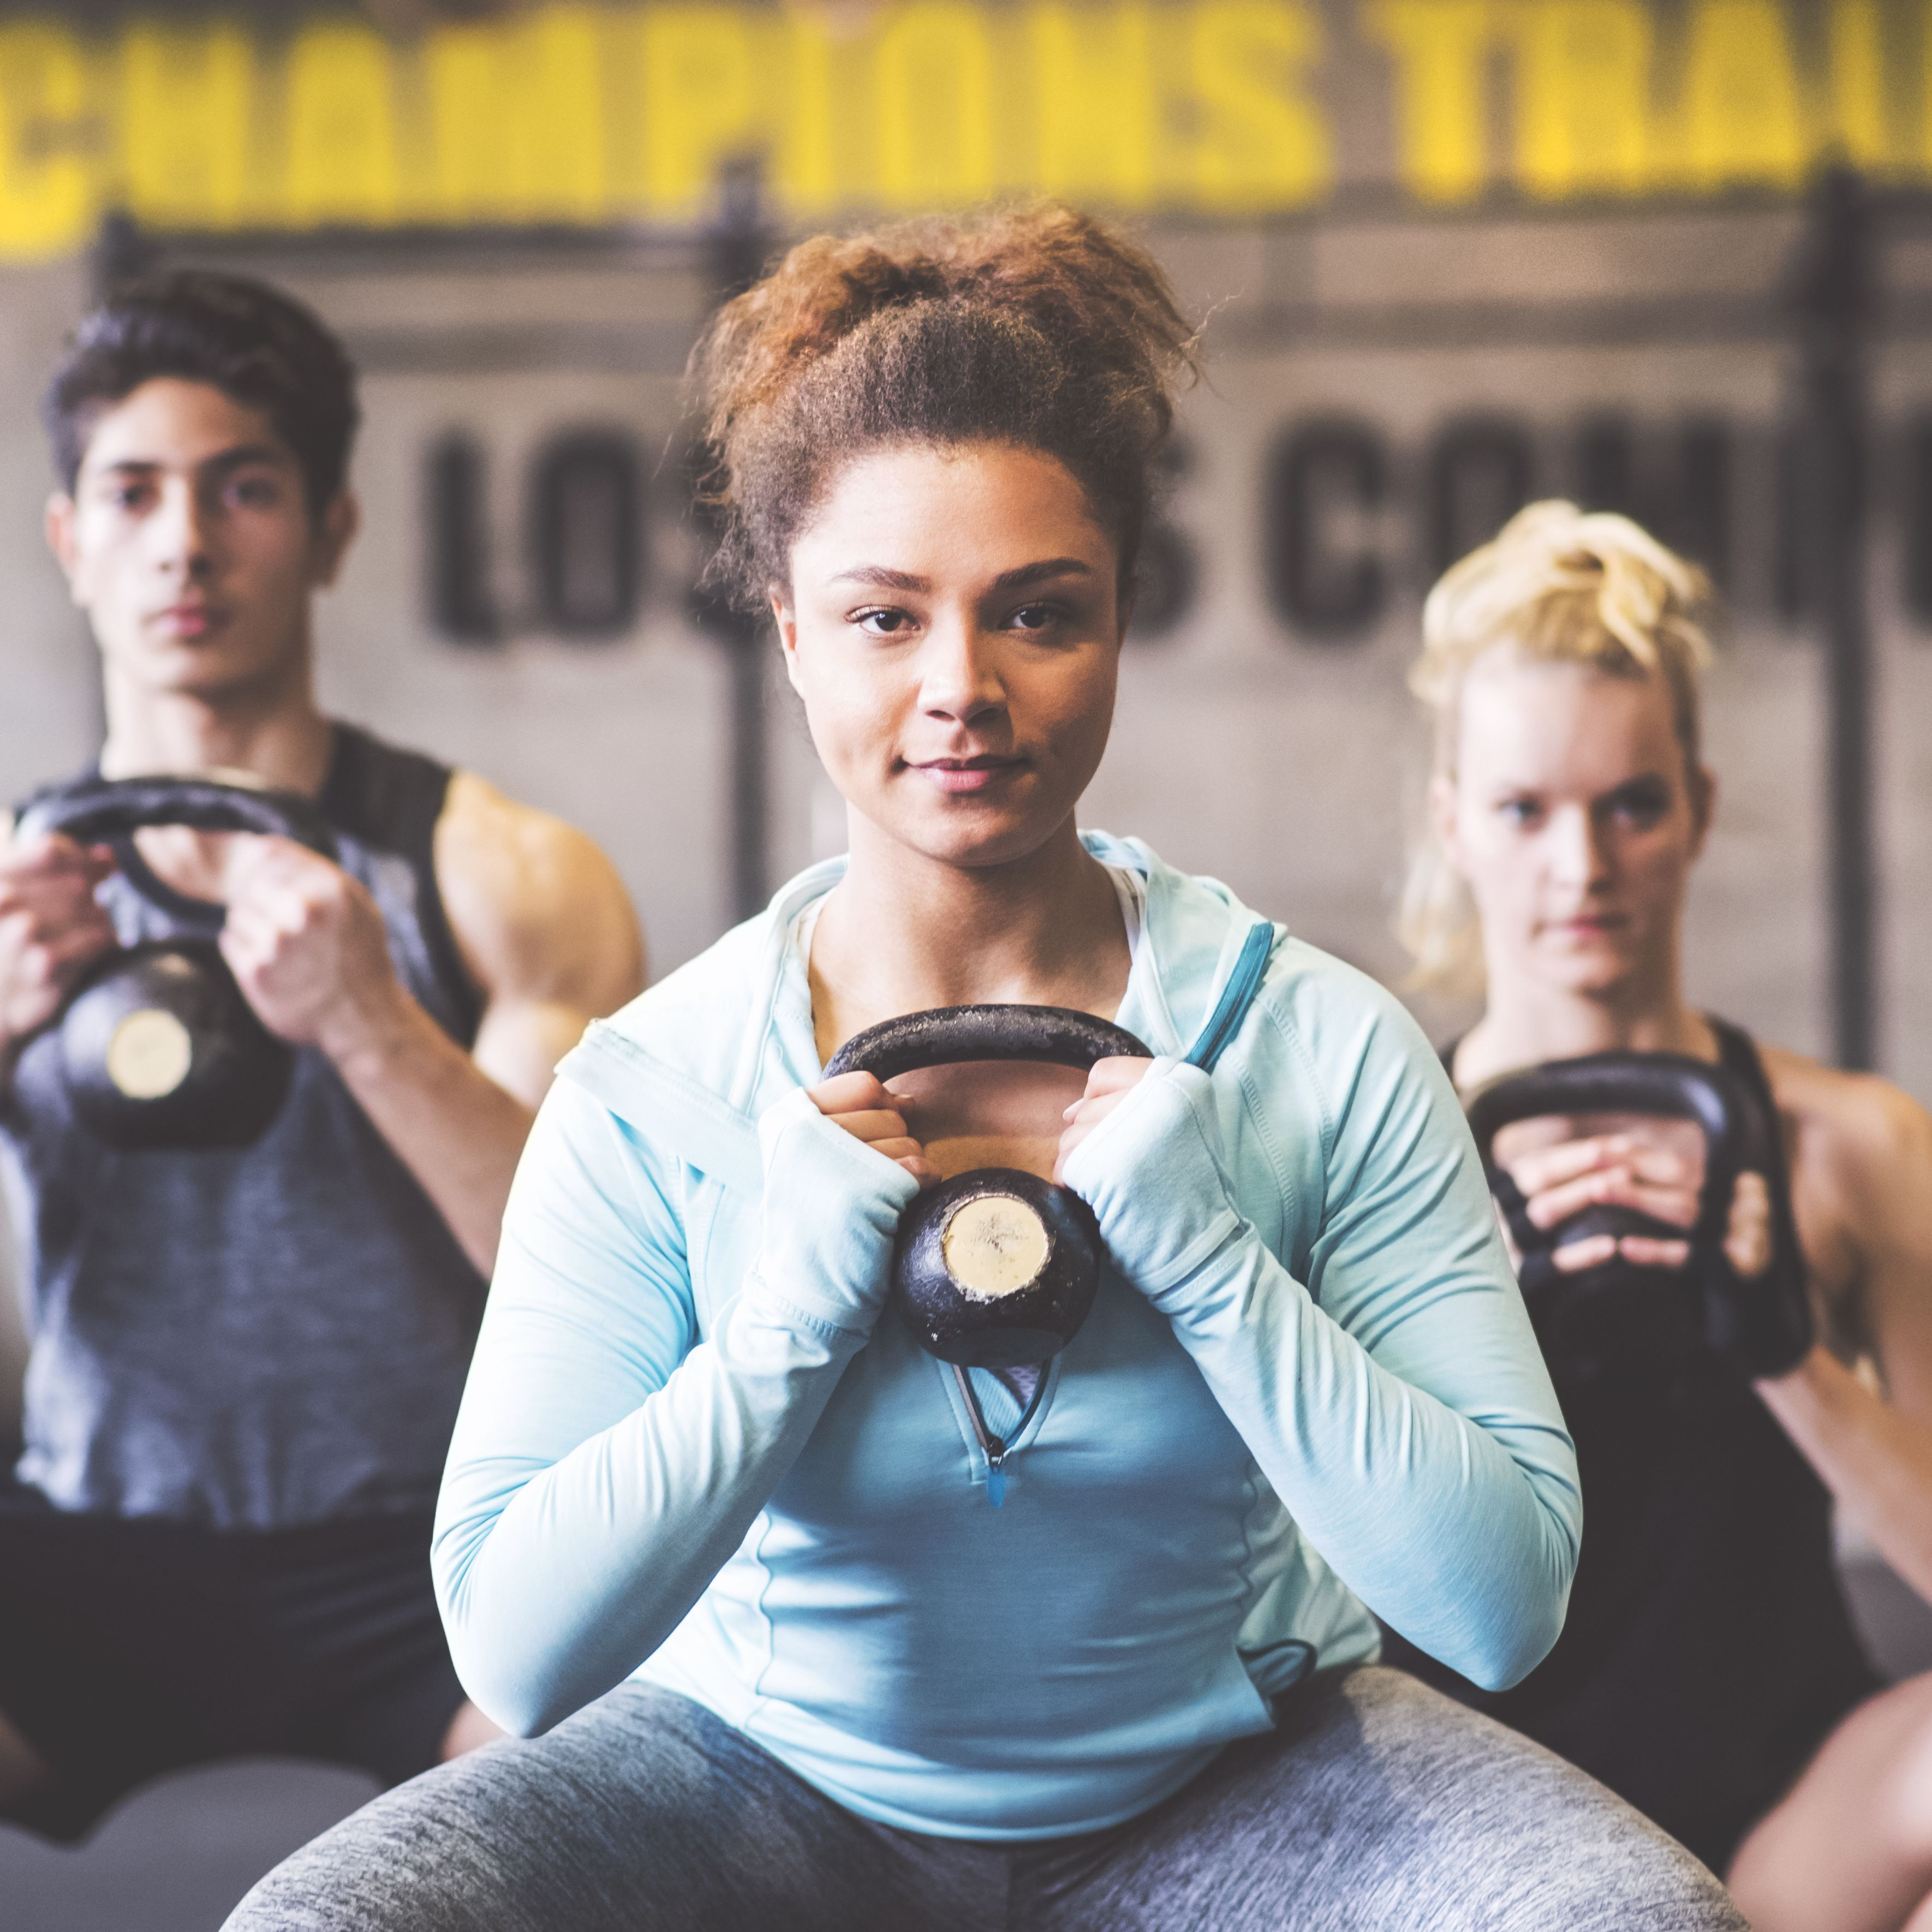 Best Workout Clothing Brands For Women With Curves There's a style rule that applies to all body types: best workout clothing brands for women